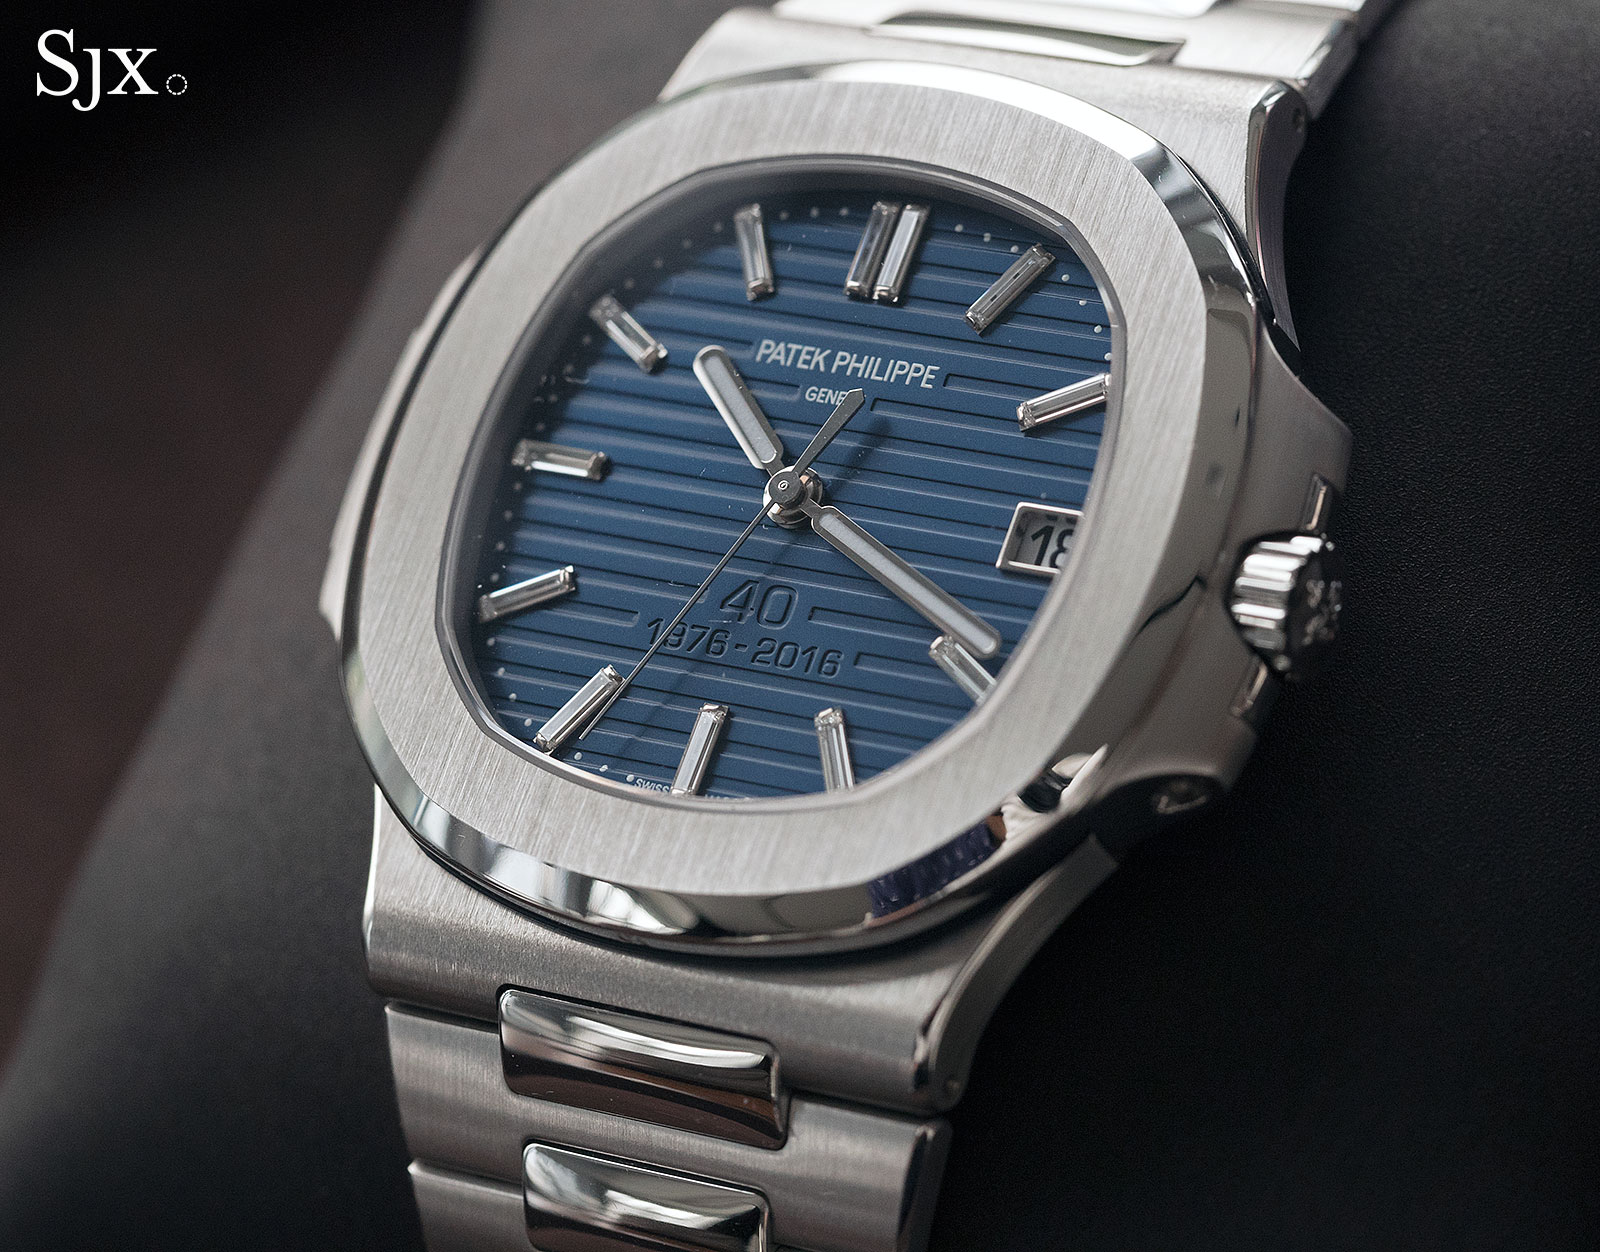 Movement Replica Swiss Watch Up Close With The Patek Philippe Nautilus Replica Watches Cheap